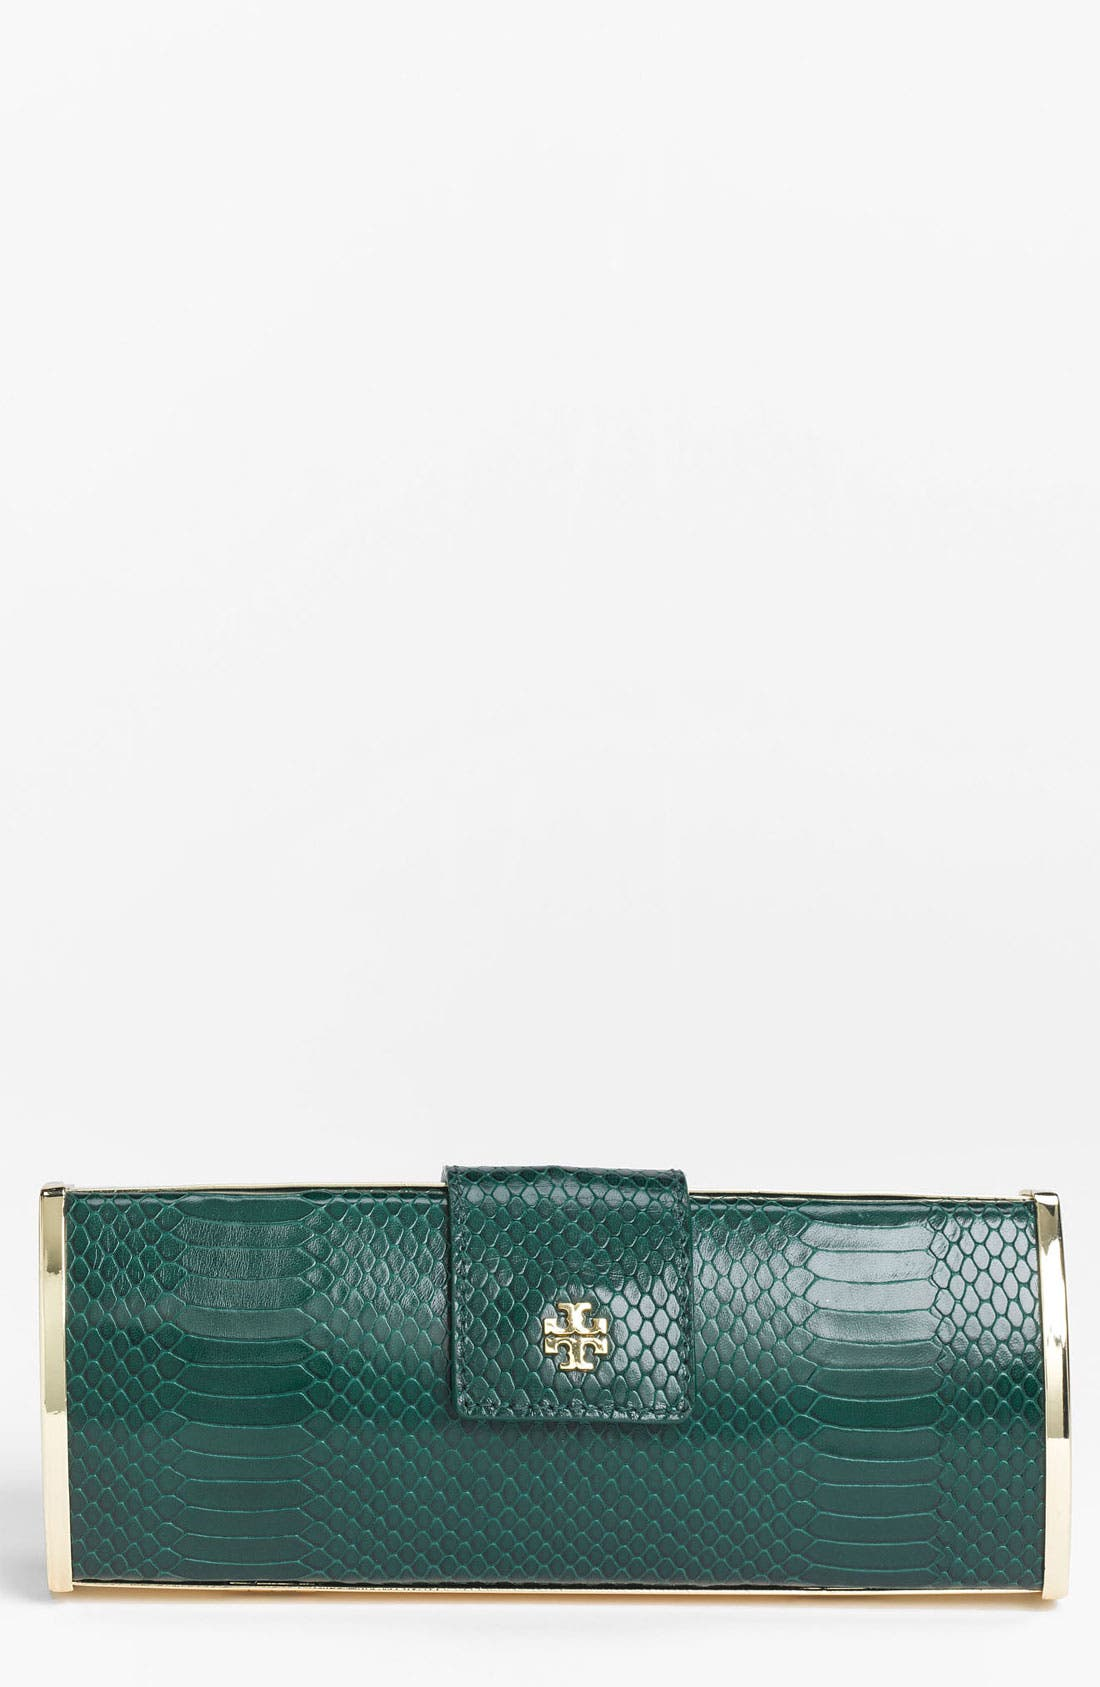 Alternate Image 1 Selected - Tory Burch 'Snake Roll' Embossed Clutch